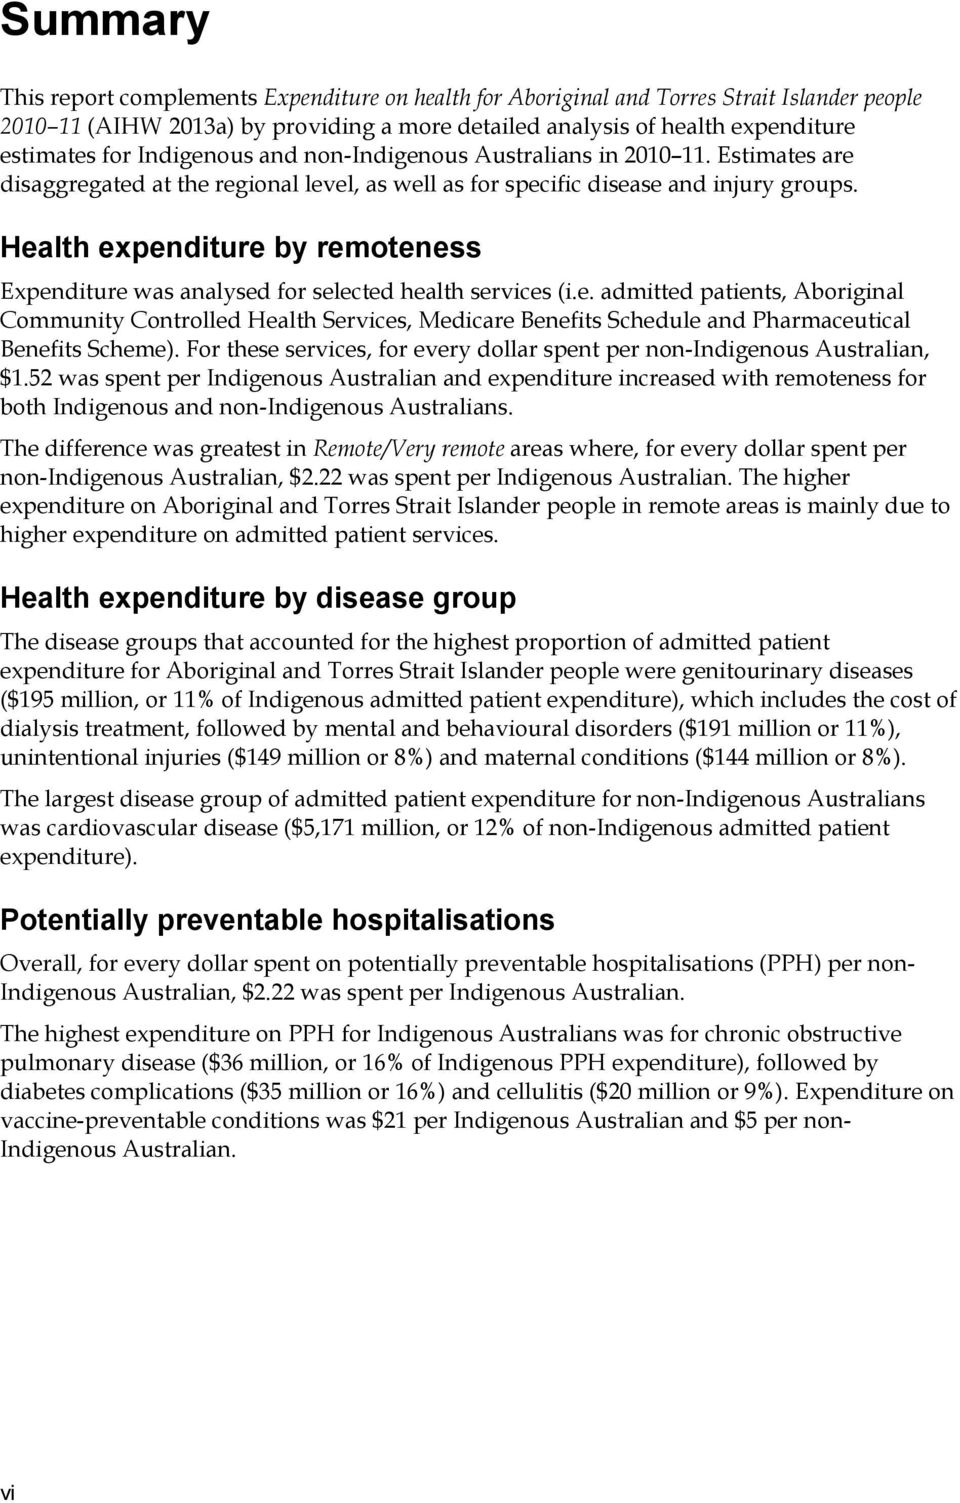 Health expenditure by remoteness Expenditure was analysed for selected health services (i.e. admitted patients, Aboriginal Community Controlled Health Services, Medicare Benefits Schedule and Pharmaceutical Benefits Scheme).